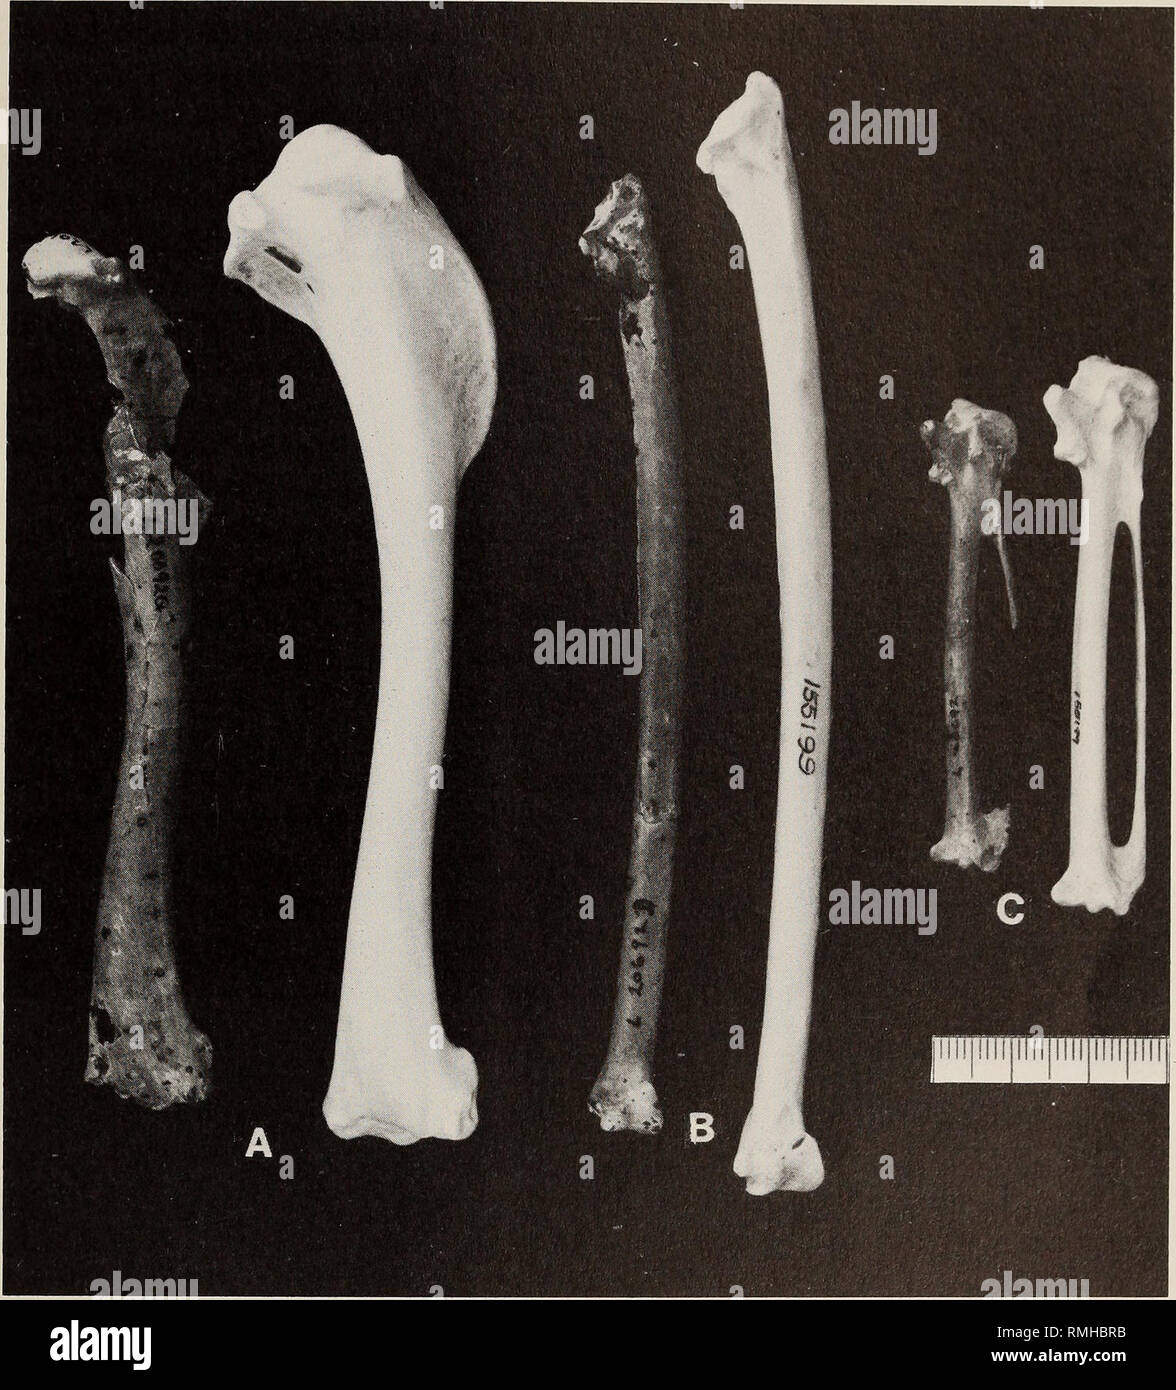 . Annals of the South African Museum = Annale van die Suid-Afrikaanse Museum. Natural history. EARLY PLIOCENE IBISES 63. Fig. 3. Wing elements of Geronticus apelex sp. nov., holotype, SAM-PQ-L20692 (on left in each pair) and G. eremita, MVZ 155199. A. Humeri. B. Ulnae. C. Carpometacarpi. Scale is in mm. and posteriorly). Mandibular symphysis narrow as in G. eremita, not broader and more flattened as in G. calvus. Compared to modern species of Geronticus, the procoracoid foramen of the coracoid is smaller, the brachial depression of the humerus is smaller, not extending as far proximally, with  - Stock Image